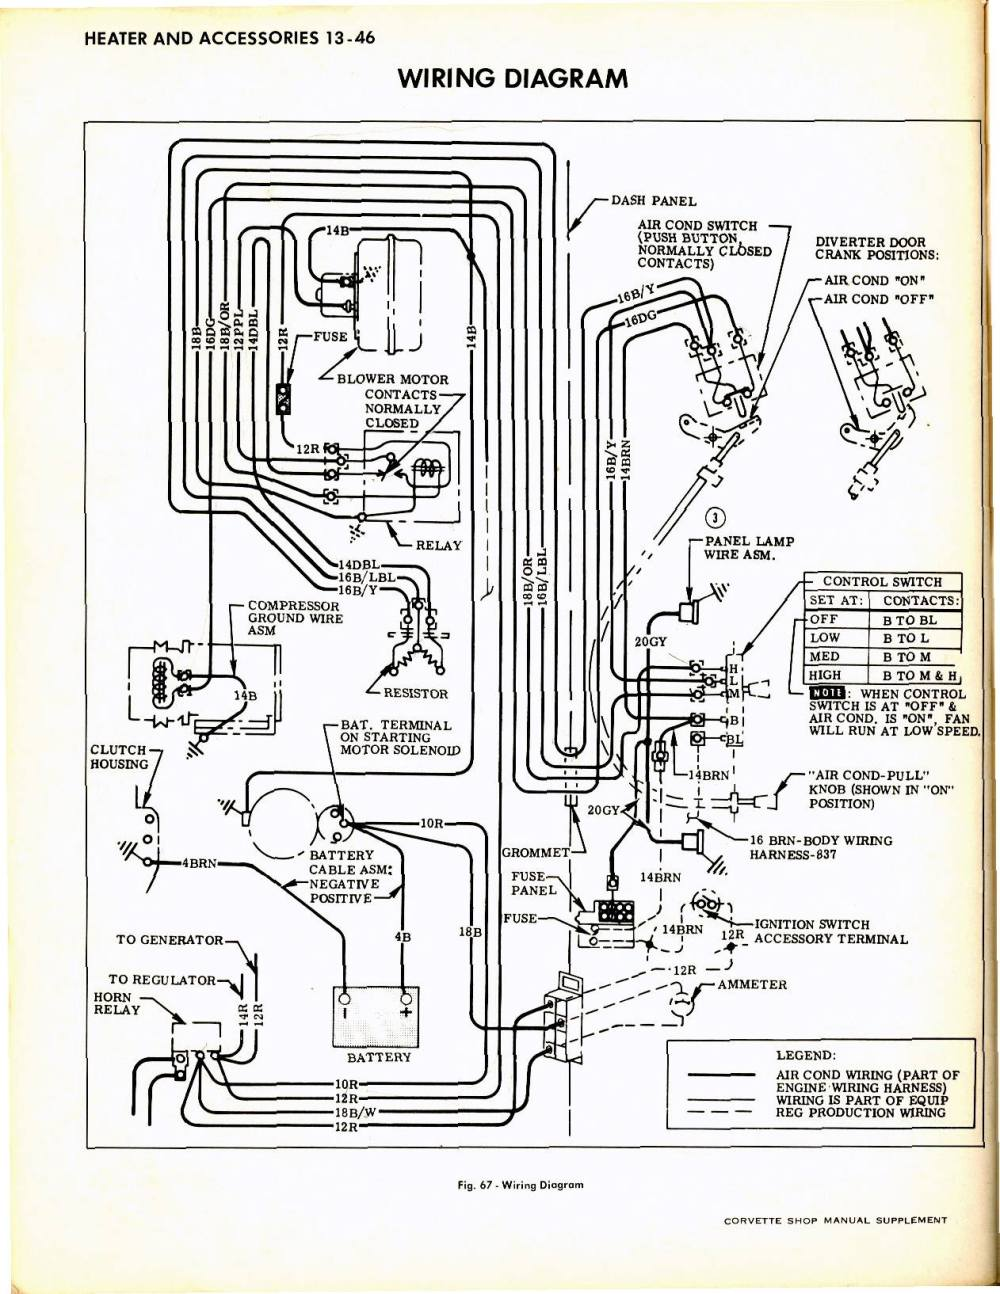 medium resolution of 1974 corvette wiring diagram pdf